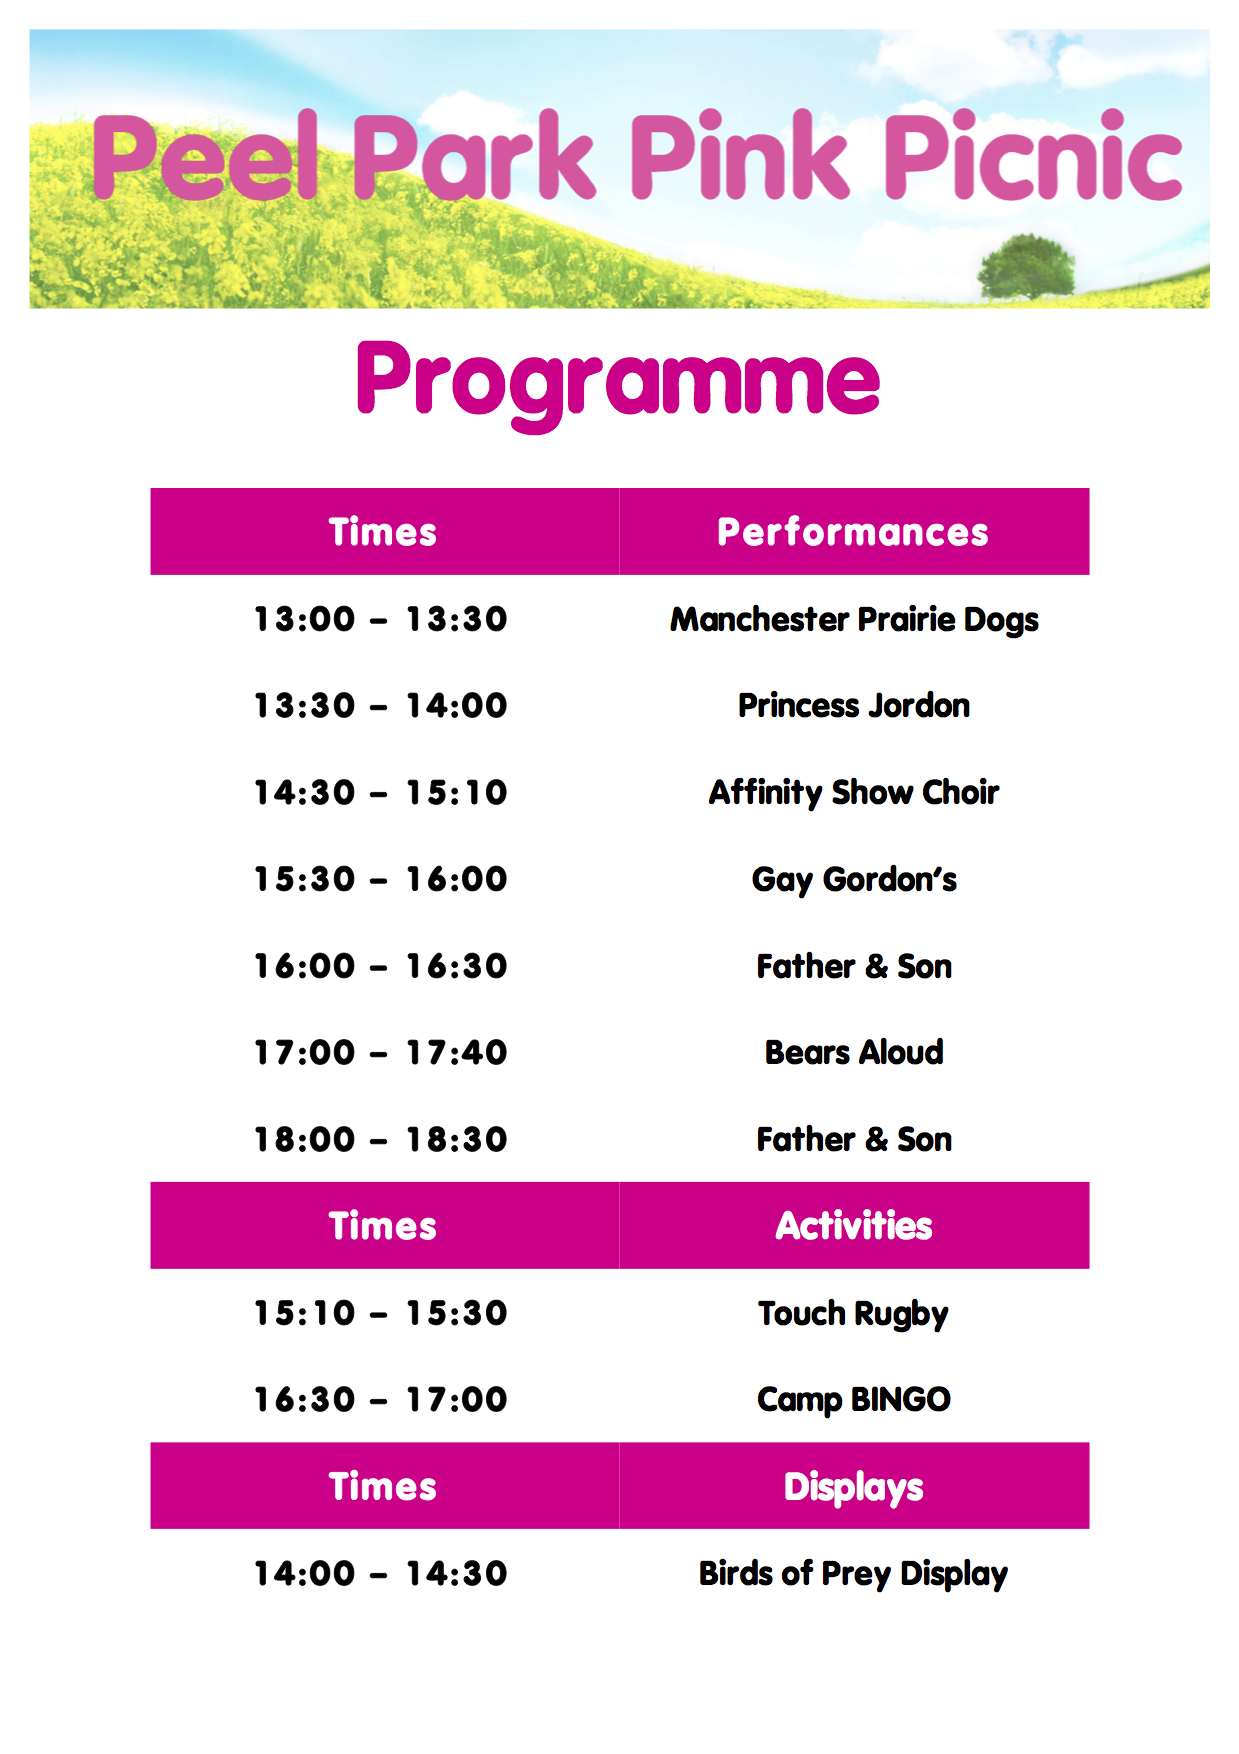 PPPP3 Programme 2013.png